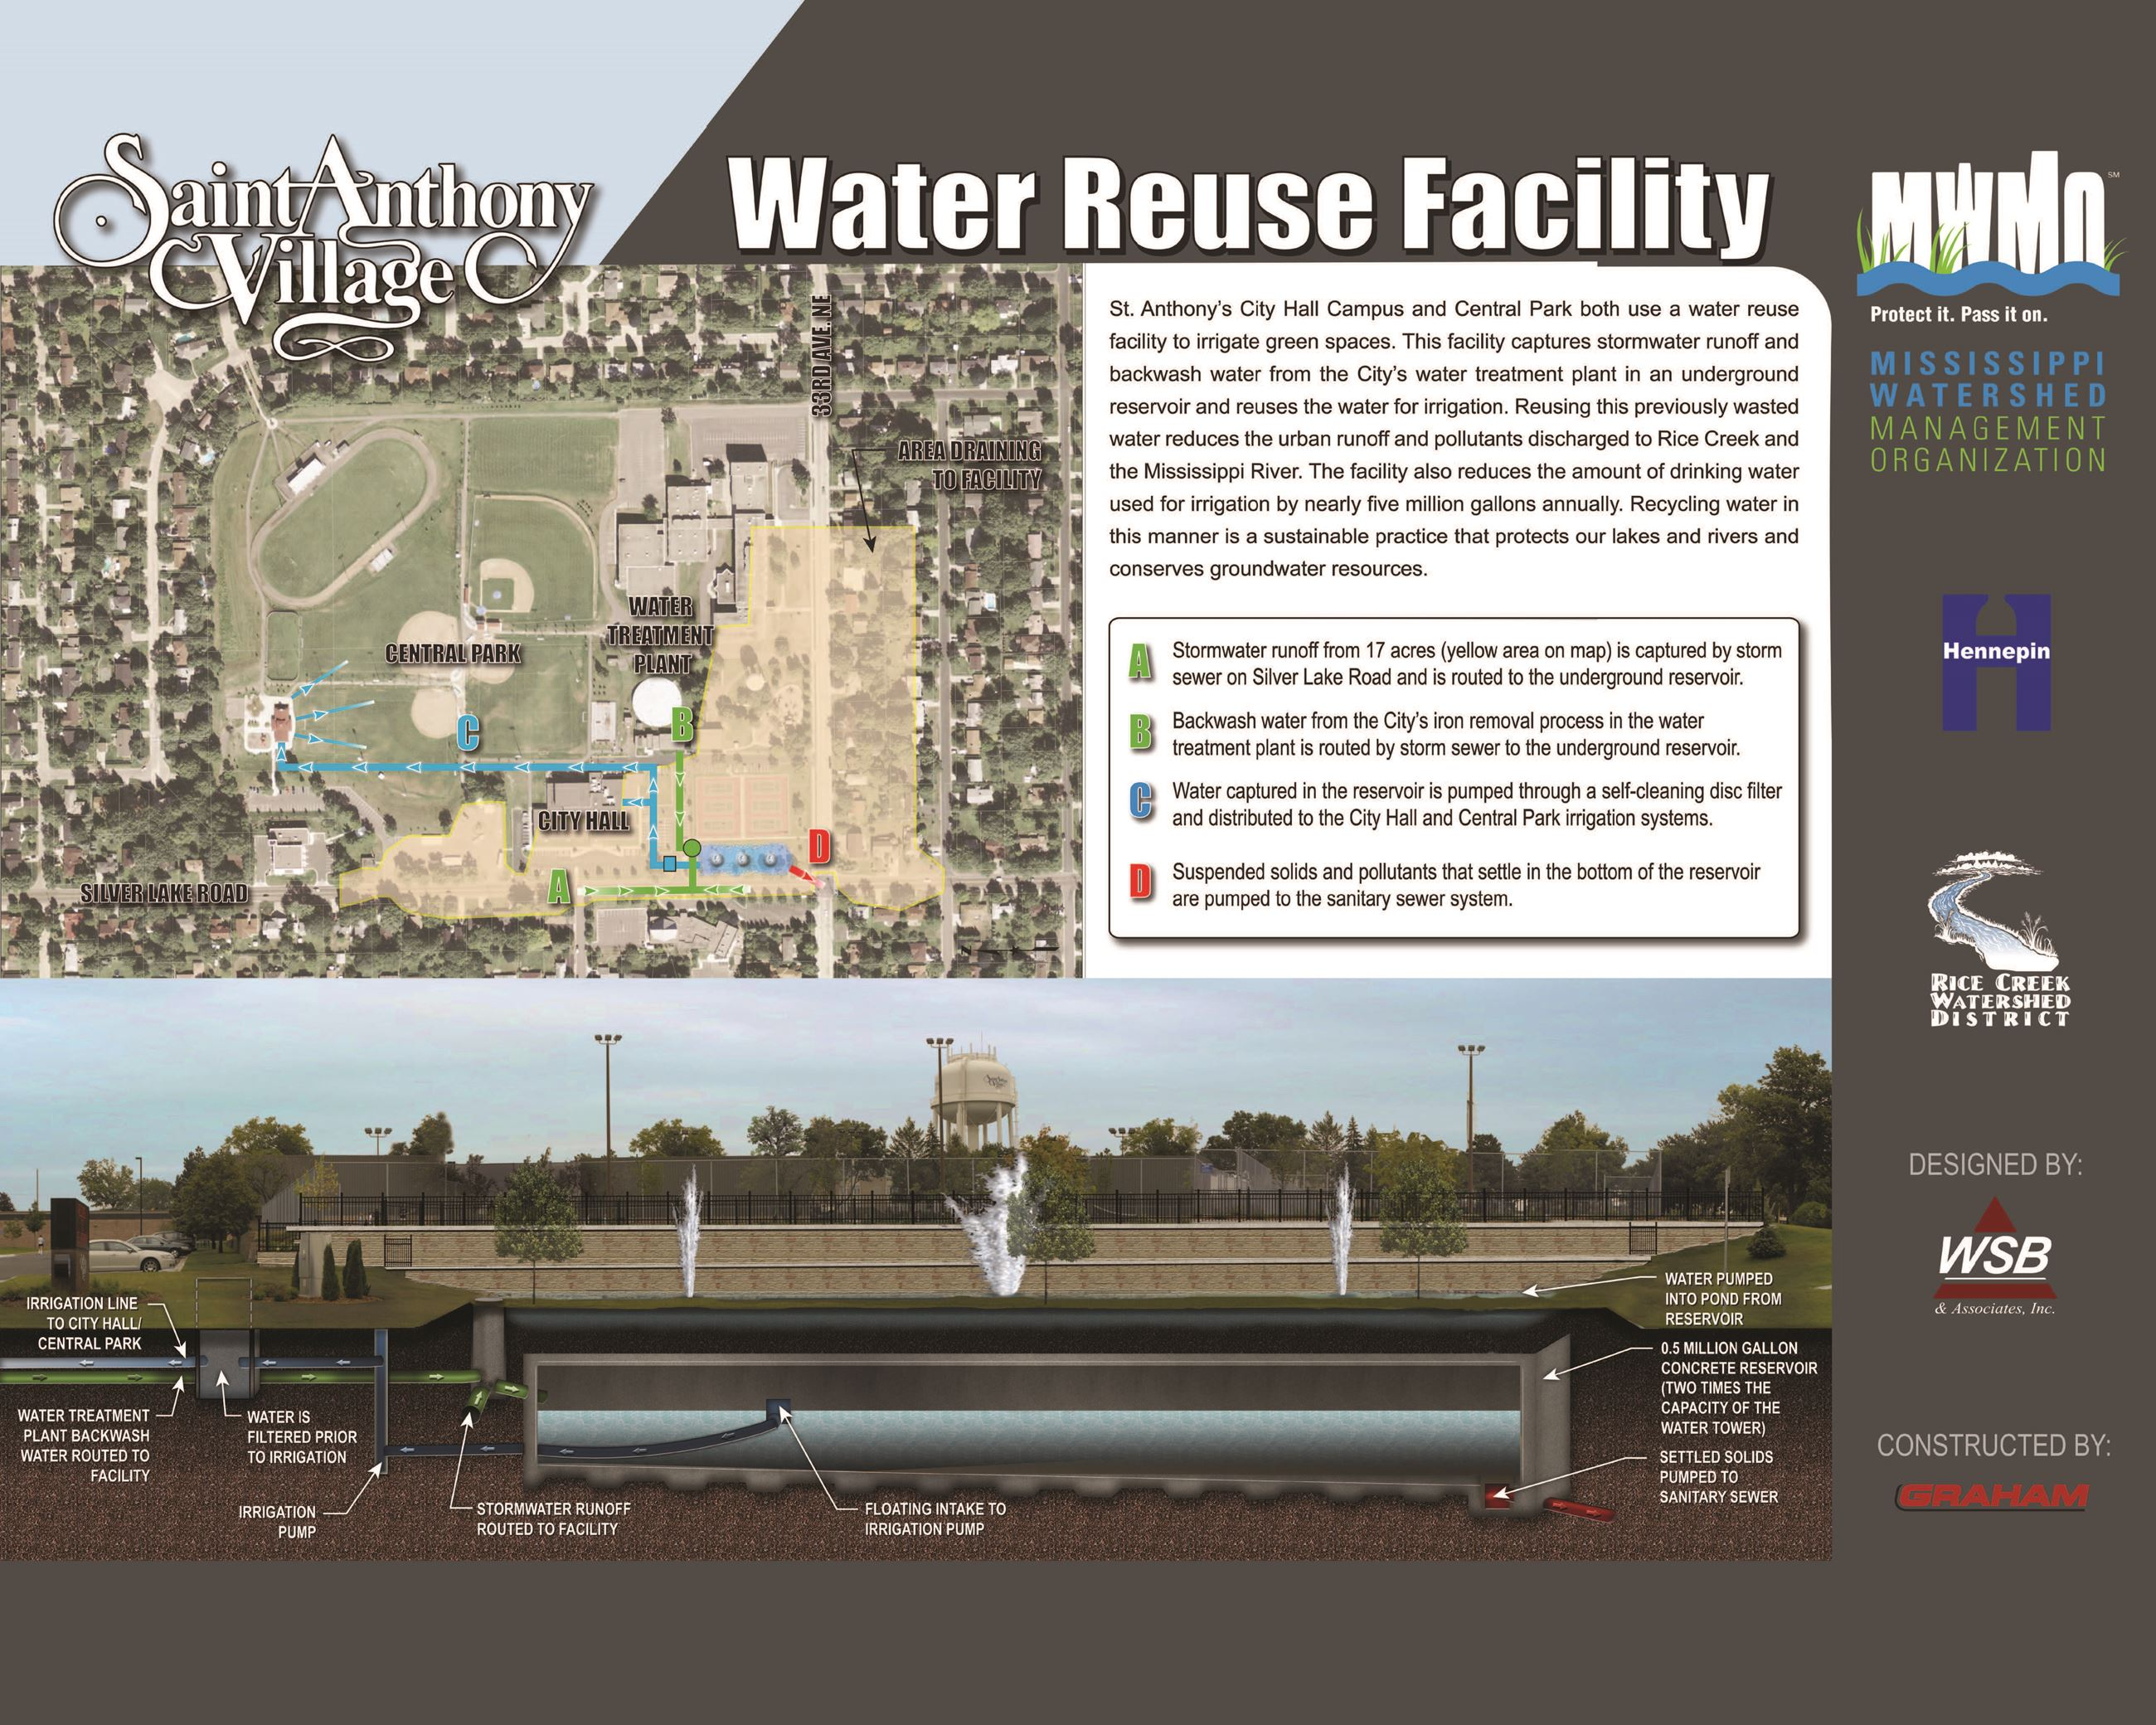 Water Reuse Facility